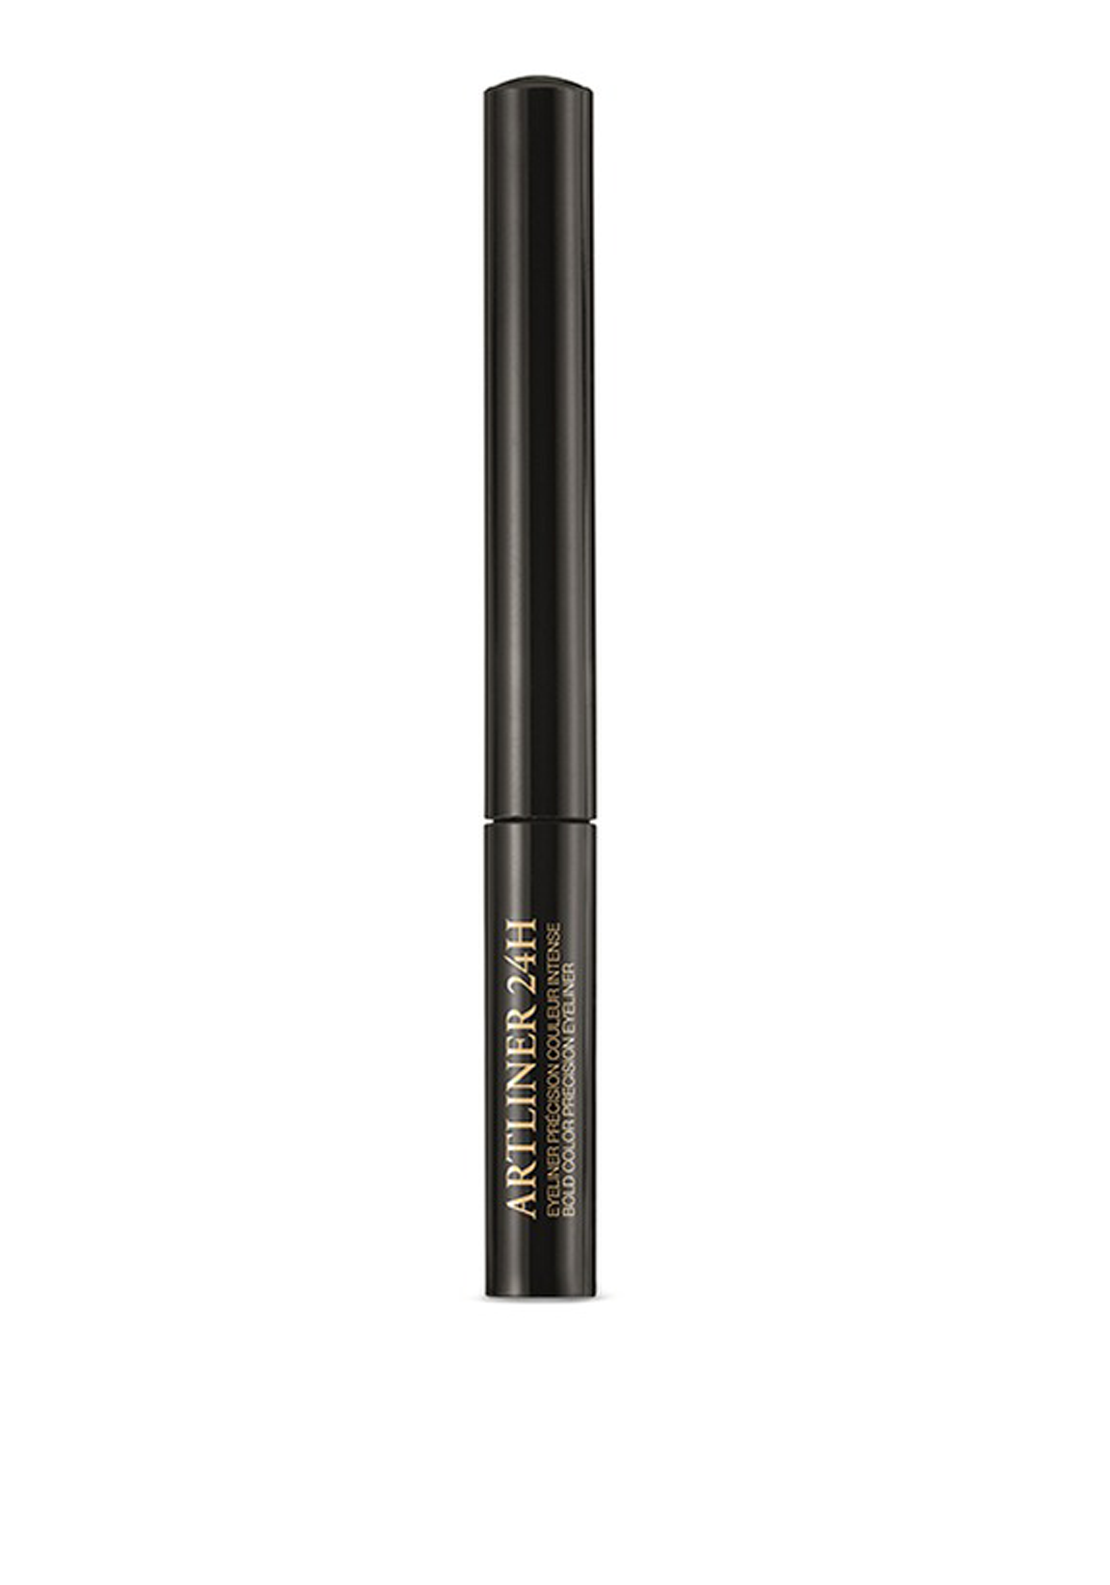 Lancome Artliner 24H Precision Eyeliner, 01 Black Diamond